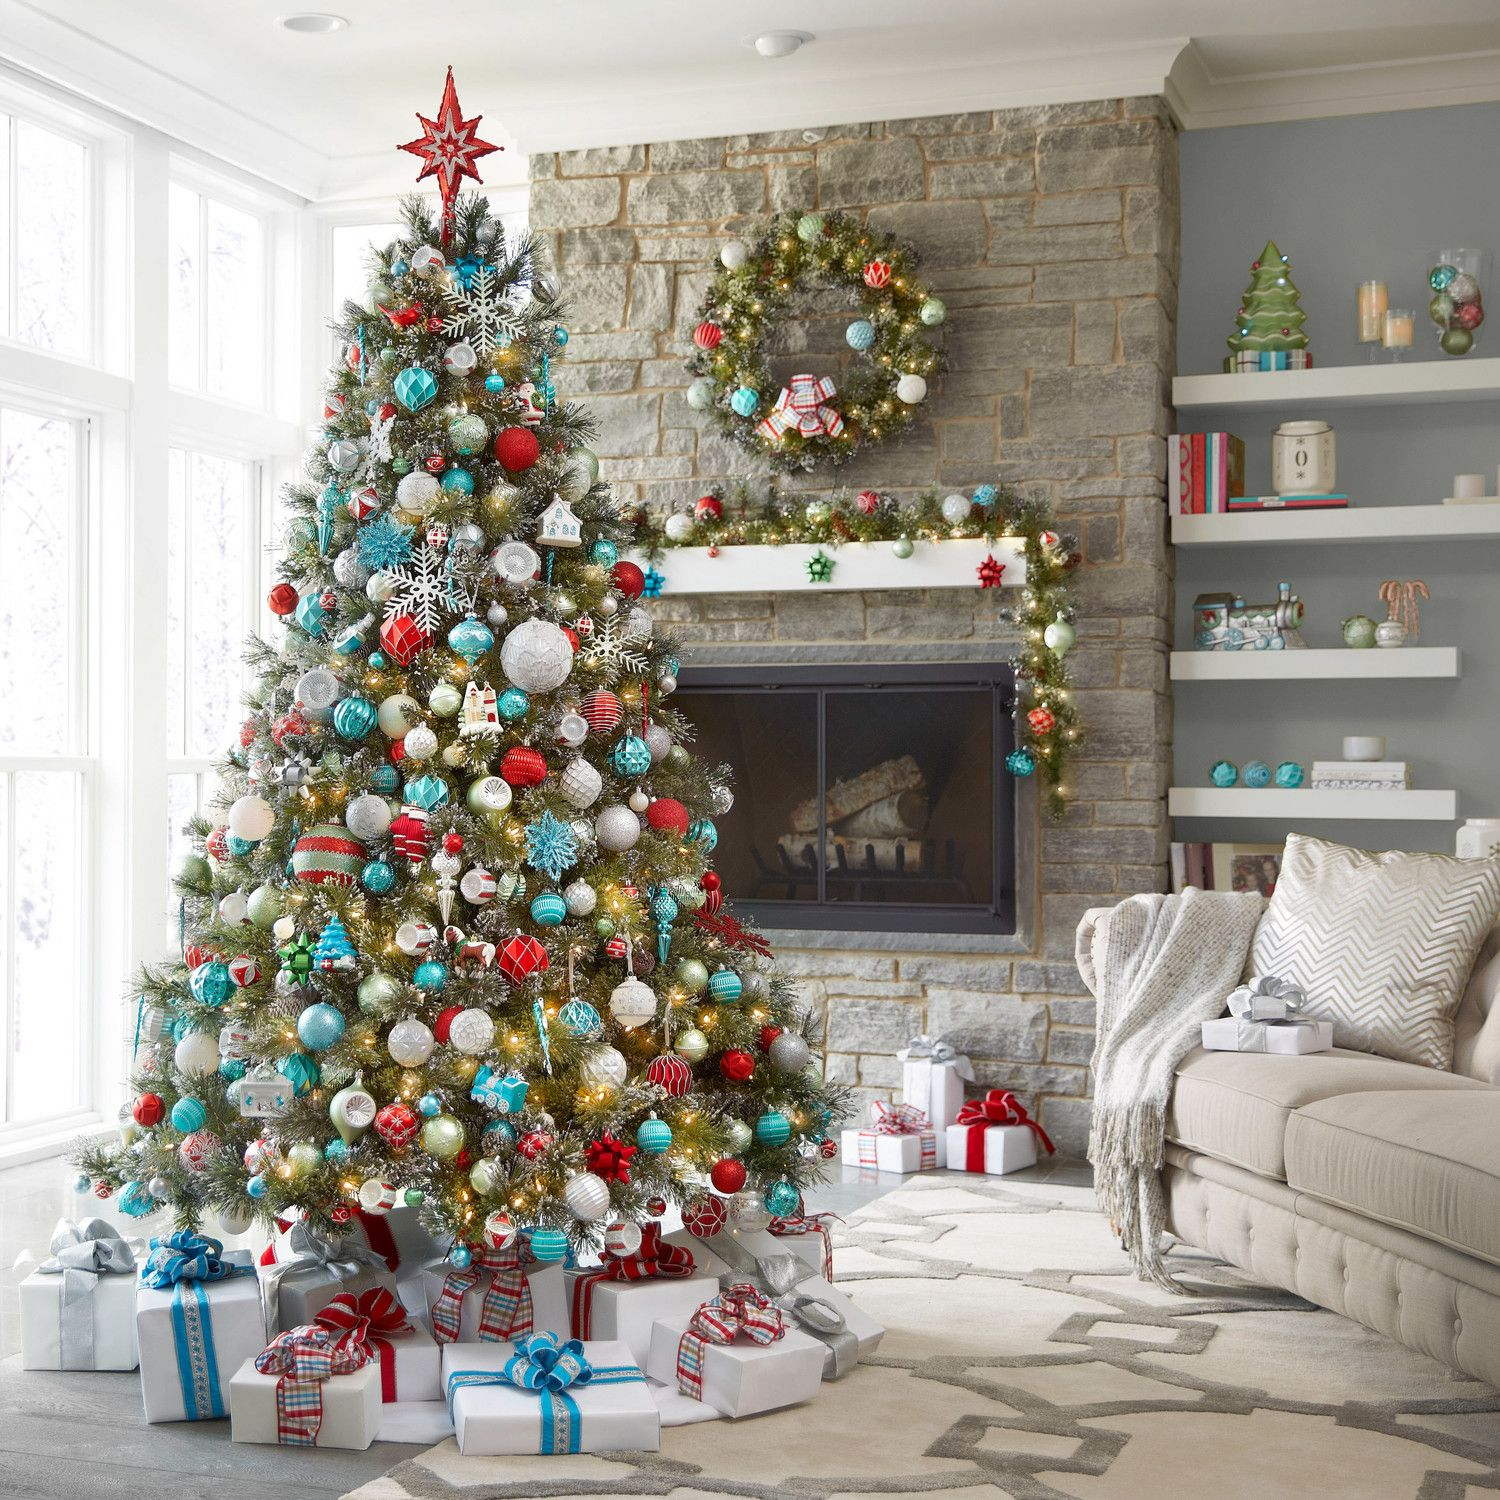 Martha S Countdown To Thanksgiving Home Depot Christmas Decorations Teal Christmas Decorations Christmas Tree Decorations